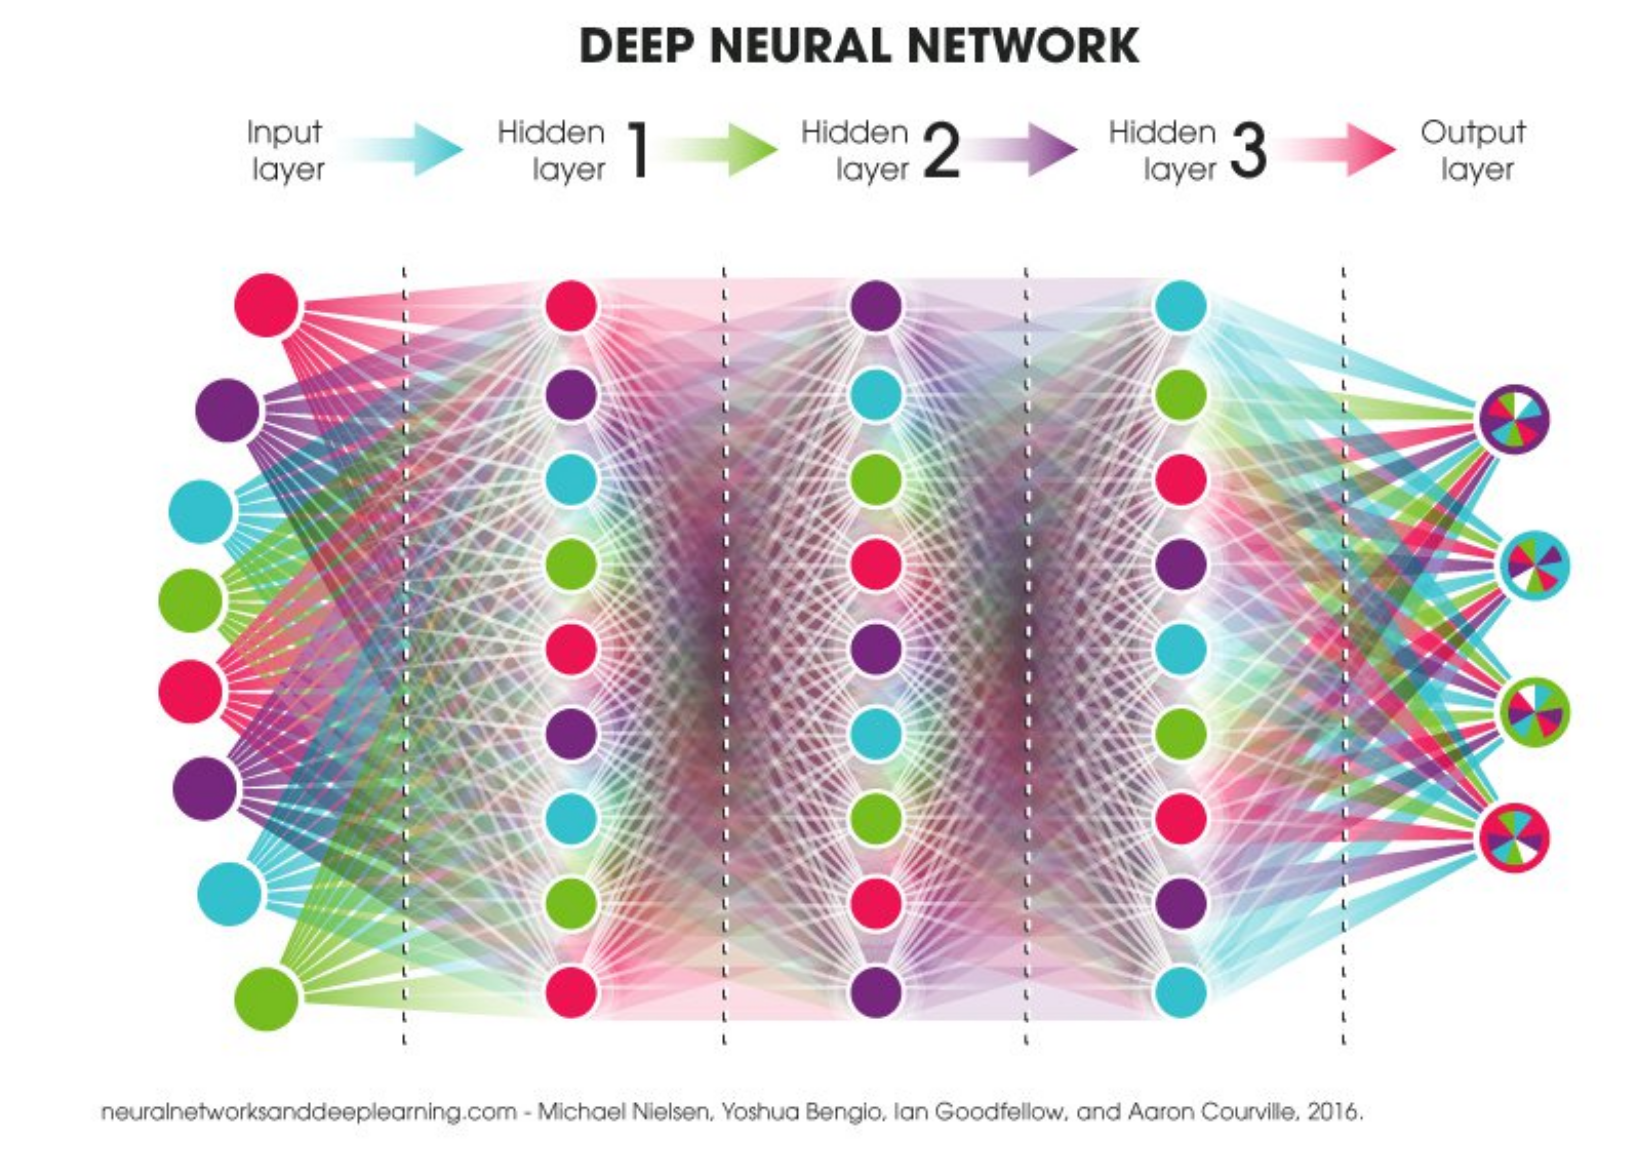 files/images/Deep_Learning_Network.PNG